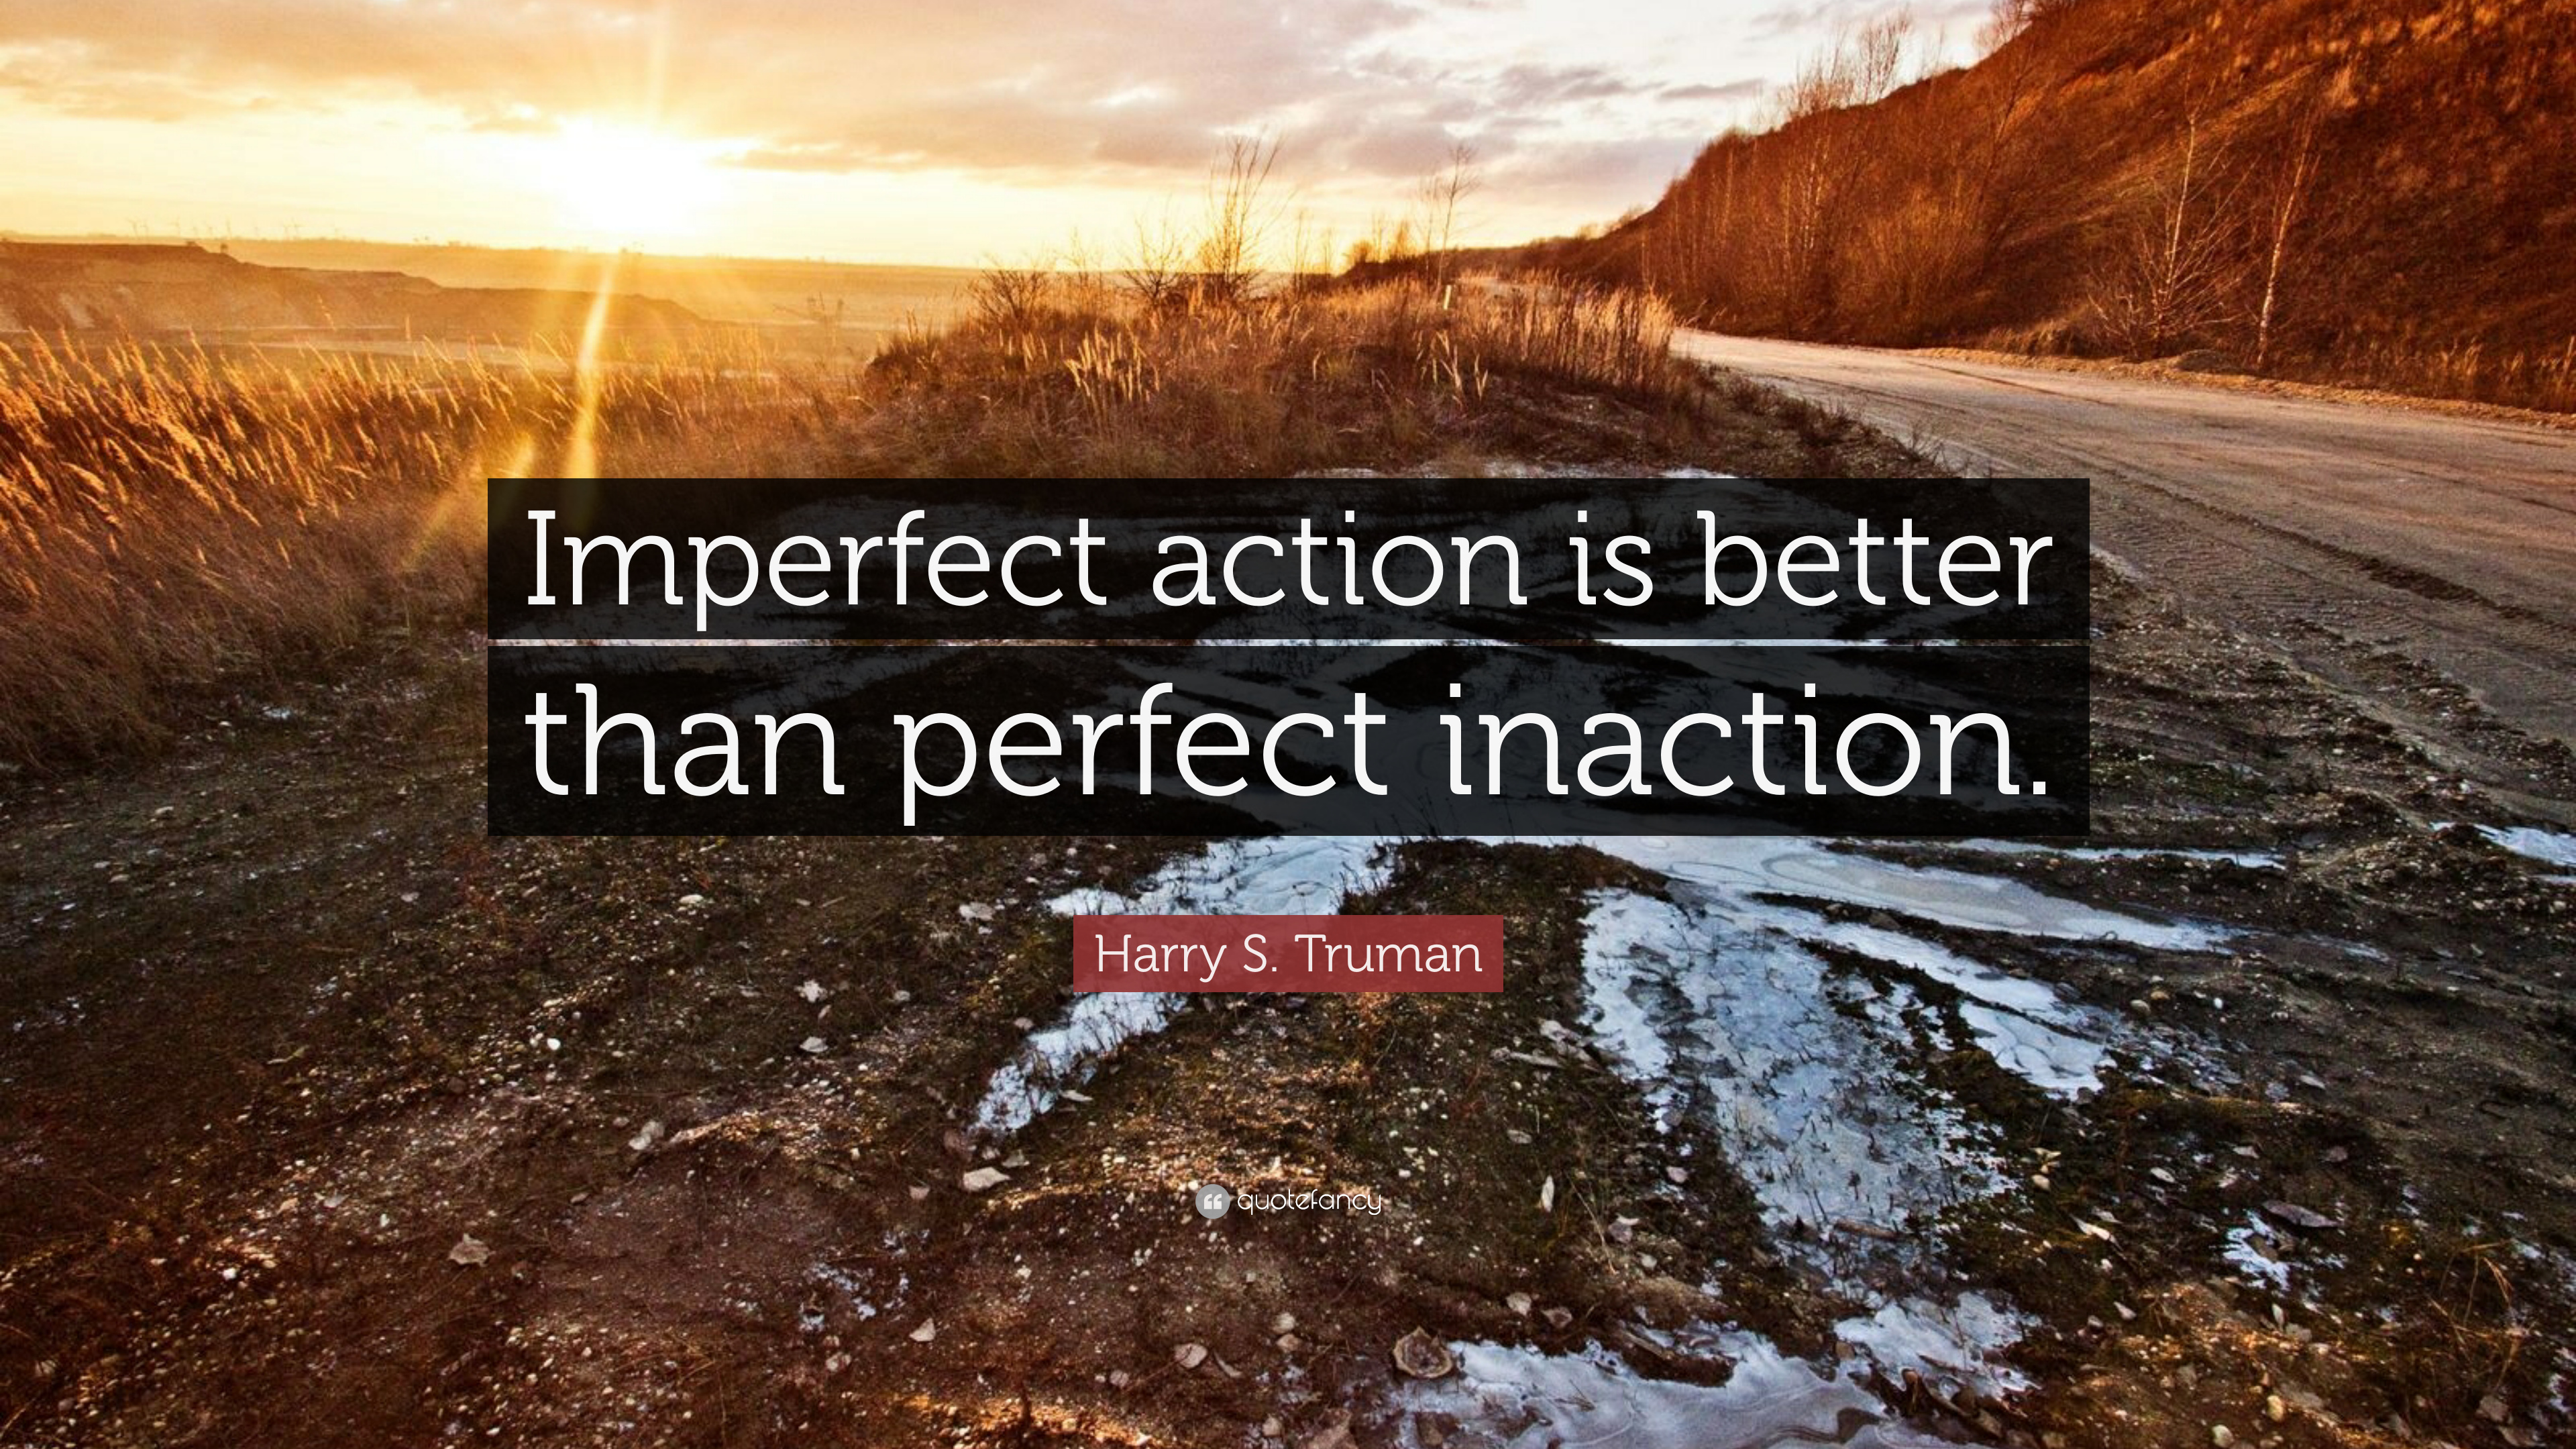 Harry S Truman Quote Imperfect action is better than